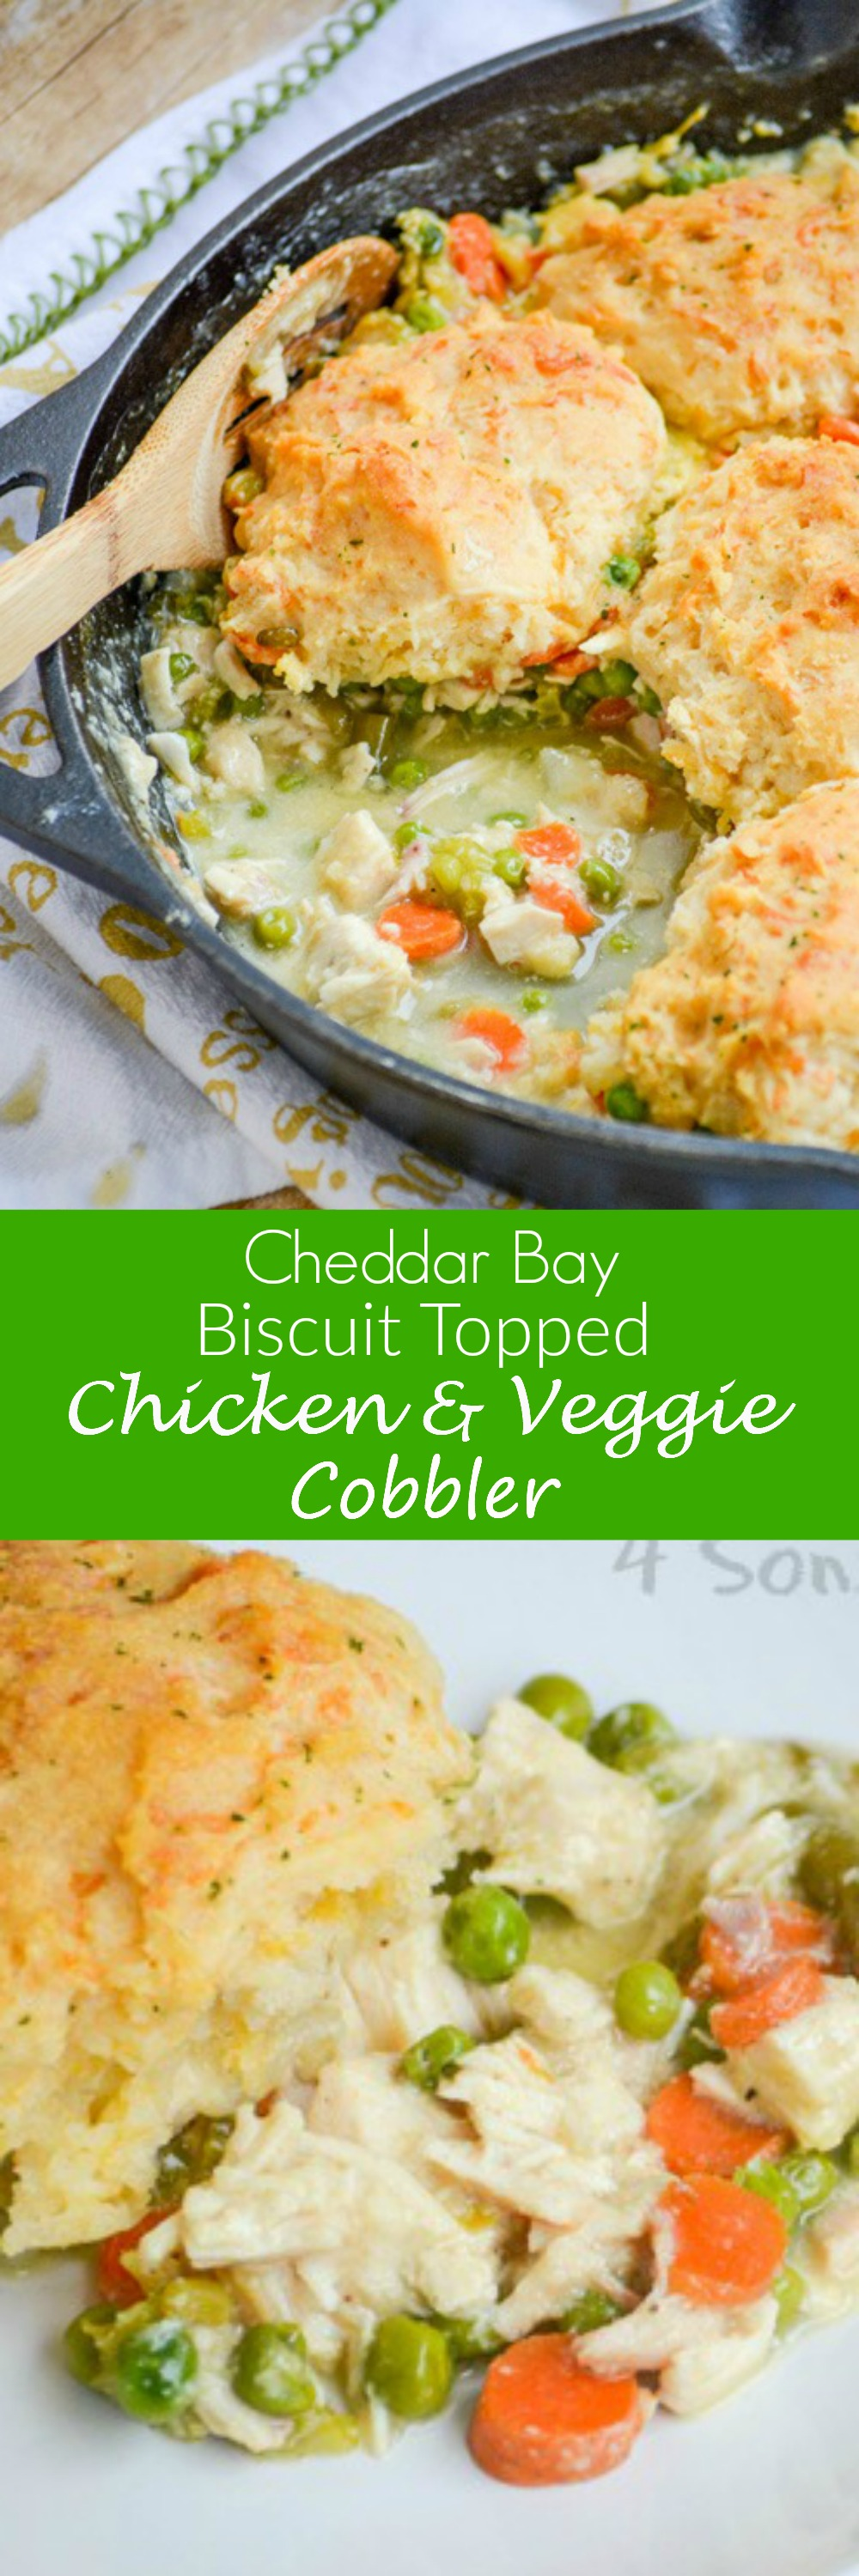 A hearty pot pie always seems like a good idea when snow & cold weather are in the forecast. This Cheddar Bay Biscuit Topped Chicken And Veggie Cobbler is an updated version of the classic dinner recipe.